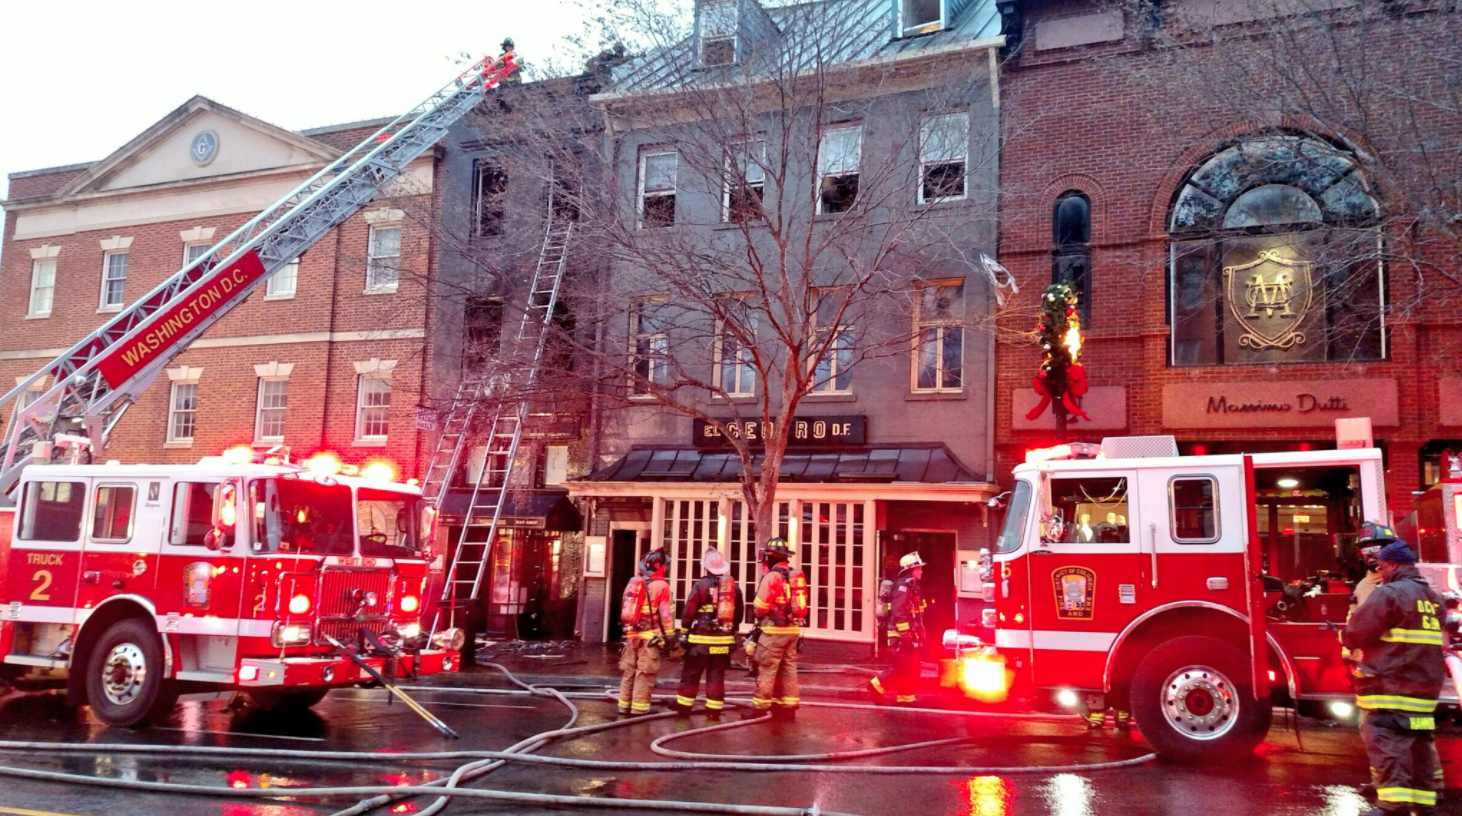 DC firefighters battle early morning fire in Northwest on Friday, Dec. 15, 2017. (Photo courtesy of DC Fire & EMS)